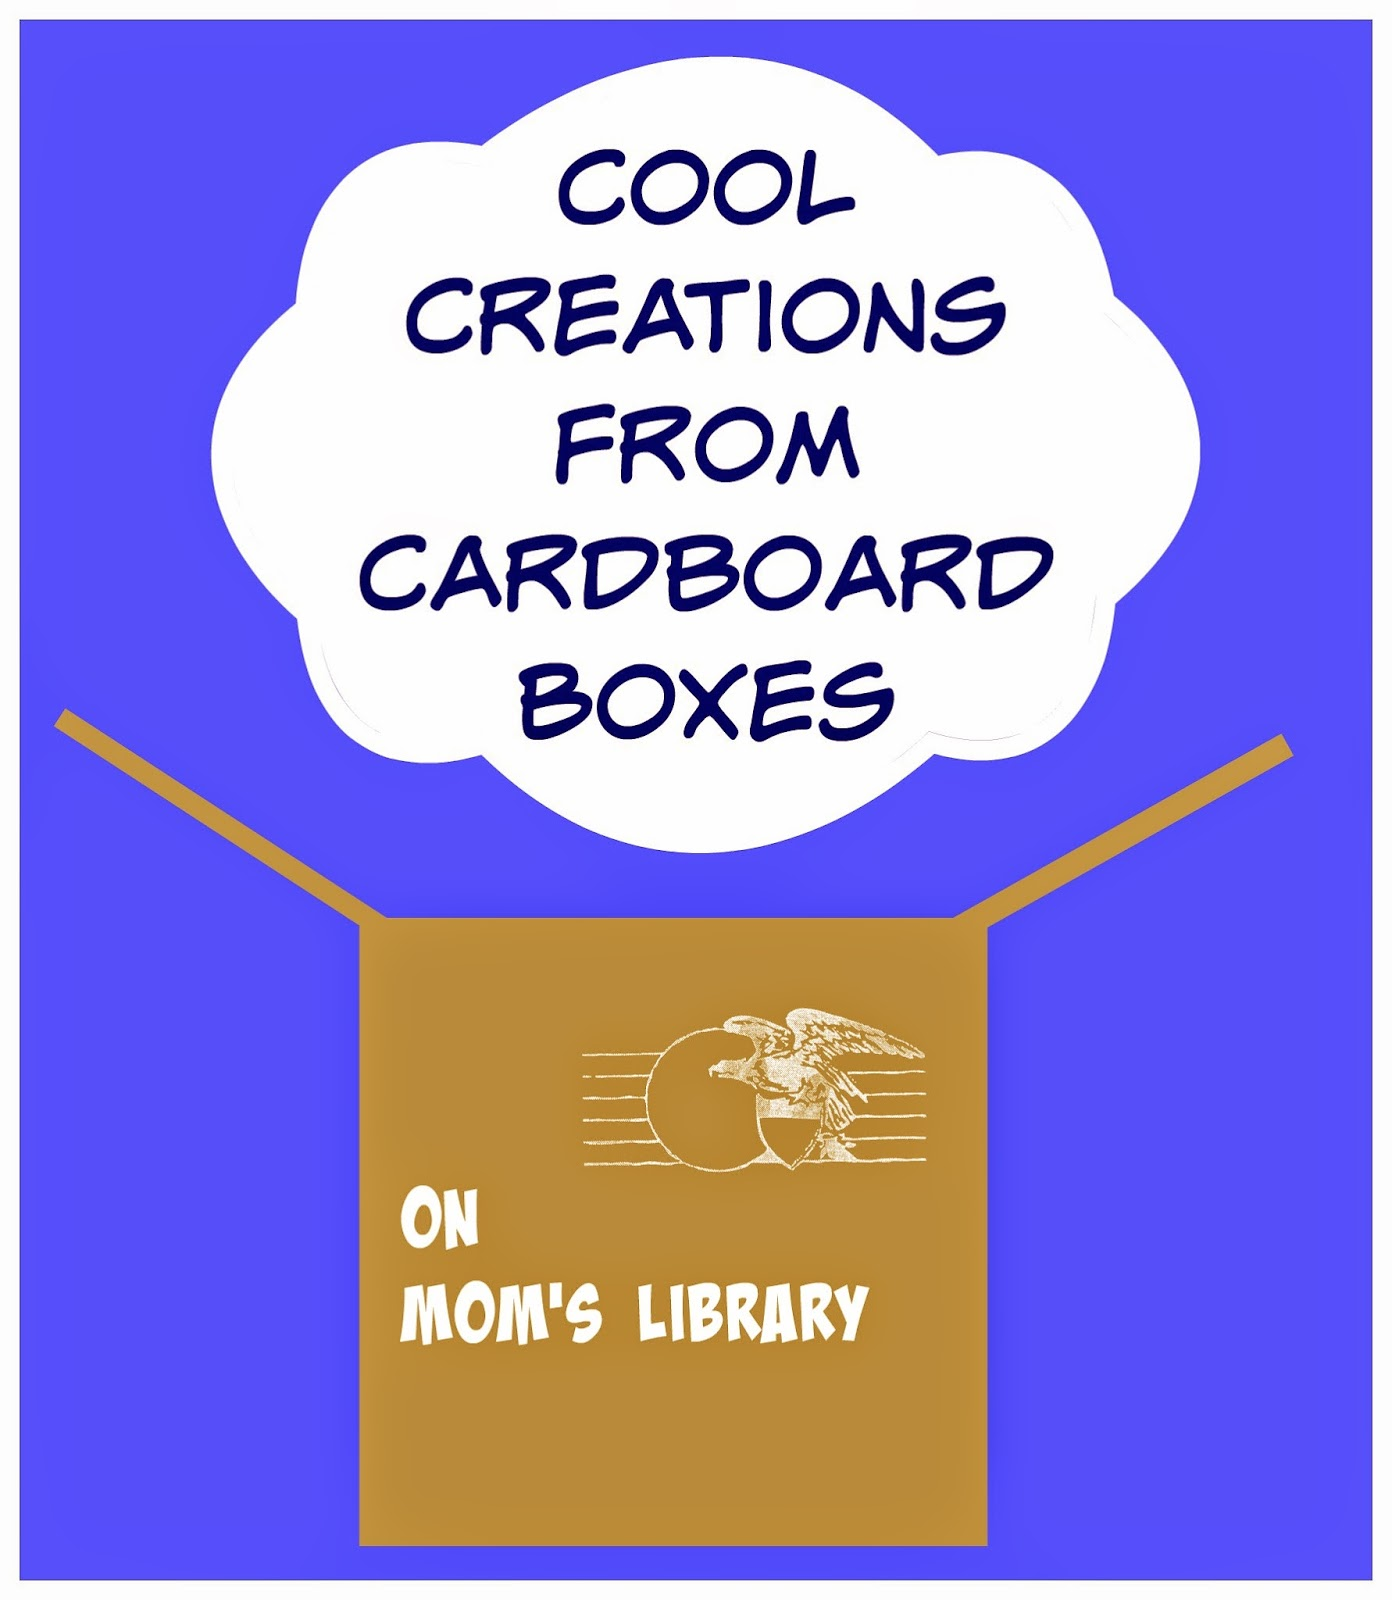 Cool Cardboard Box Creations on Mom's Library